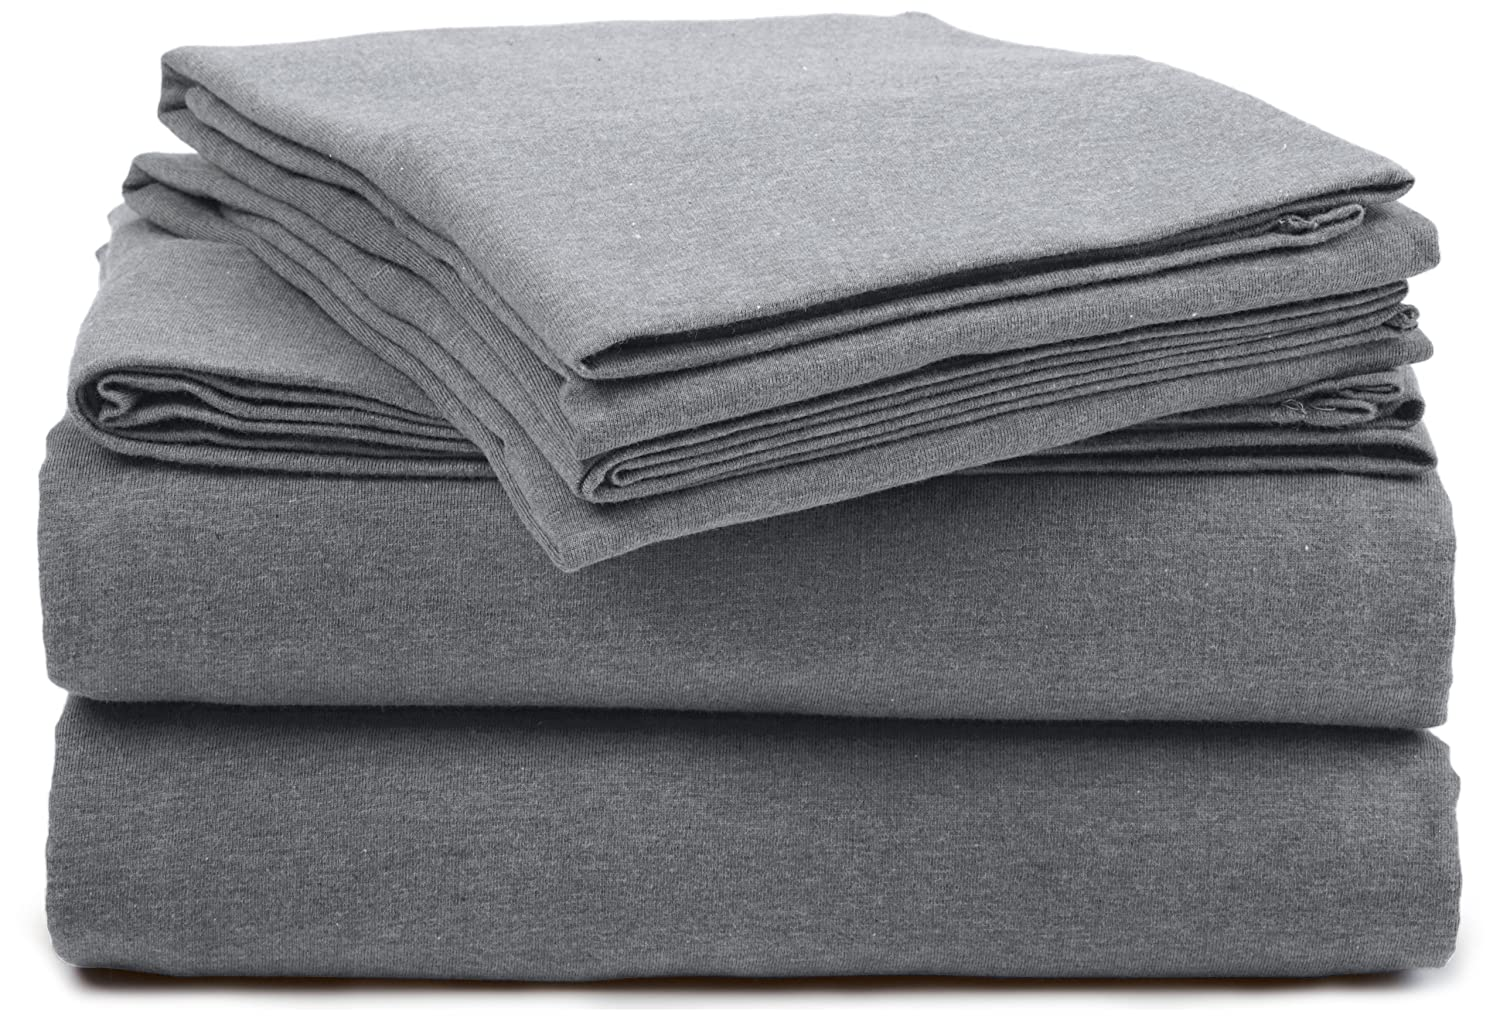 Superieur Pinzon Heather Jersey Sheet Set   Twin Extra Long, Chambray Heather:  Amazon.ca: Home U0026 Kitchen